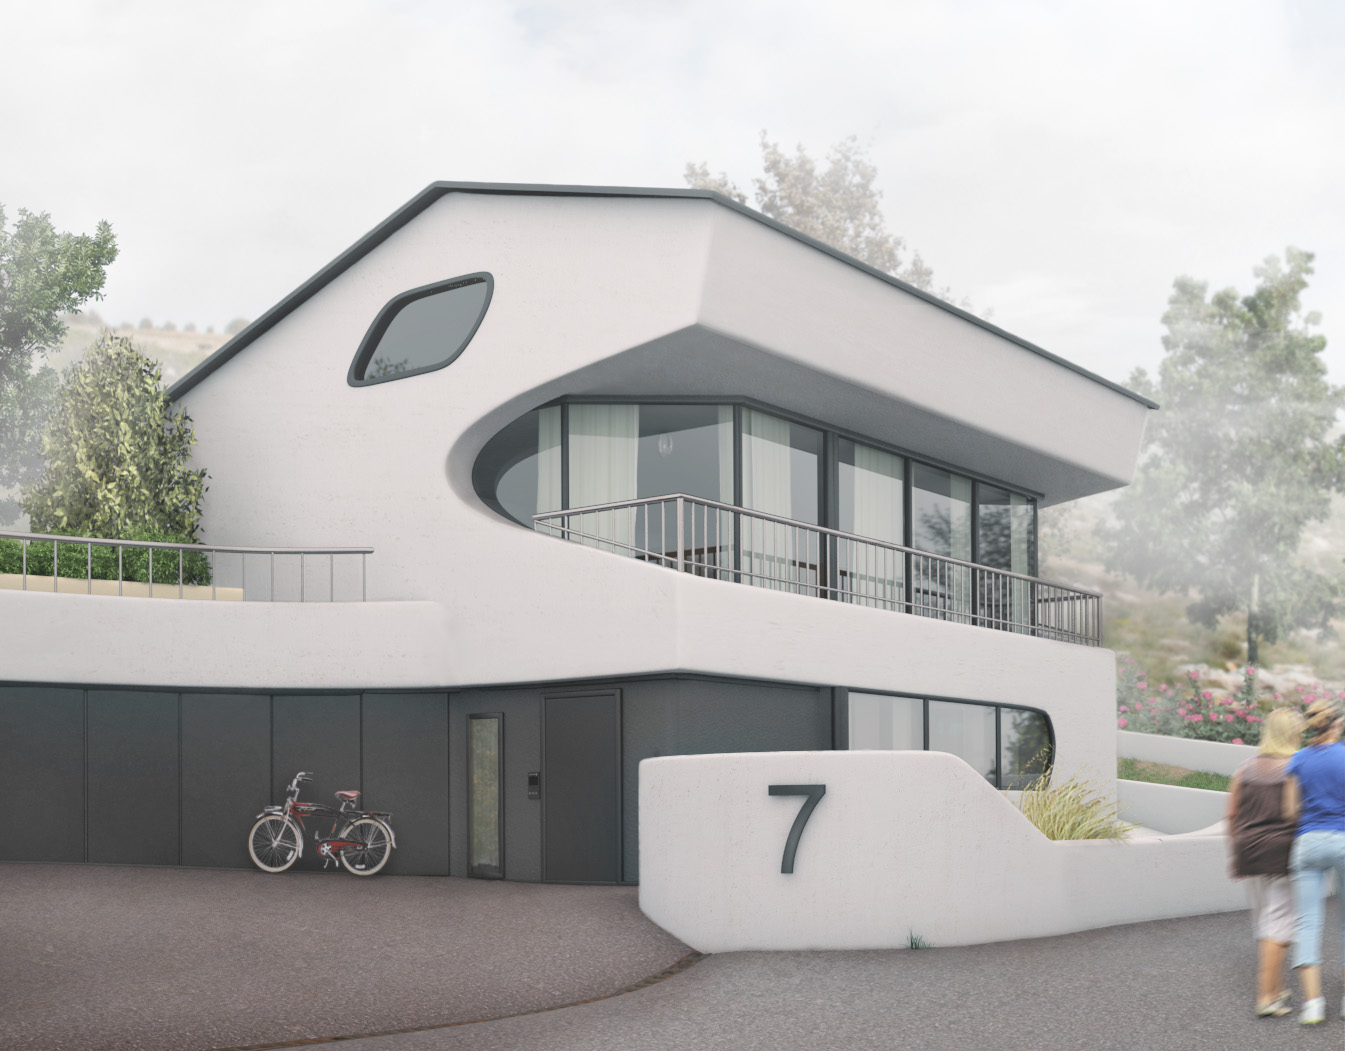 HOUSE IN FOG realistic 3D visualization architecture CGI high-end top quality scandinavian illustration photorealistic